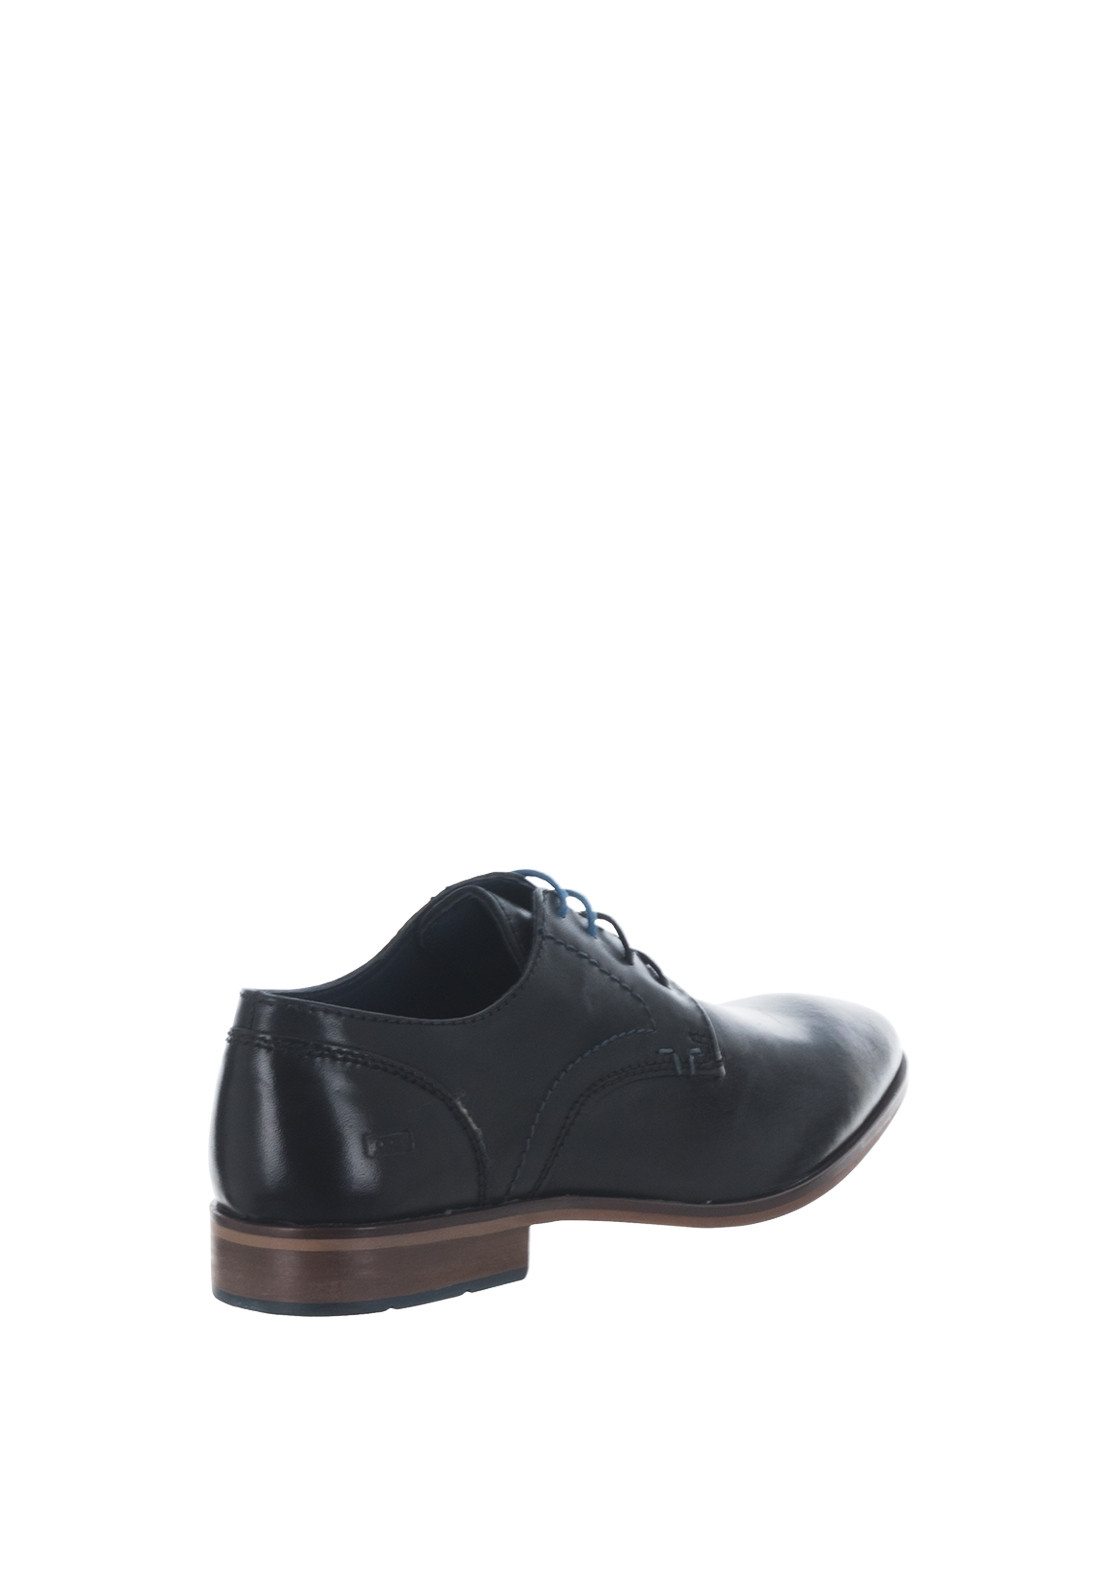 New Mooda Lace Up Classic Dress Casual Mens Leather Formal Shoes Wine